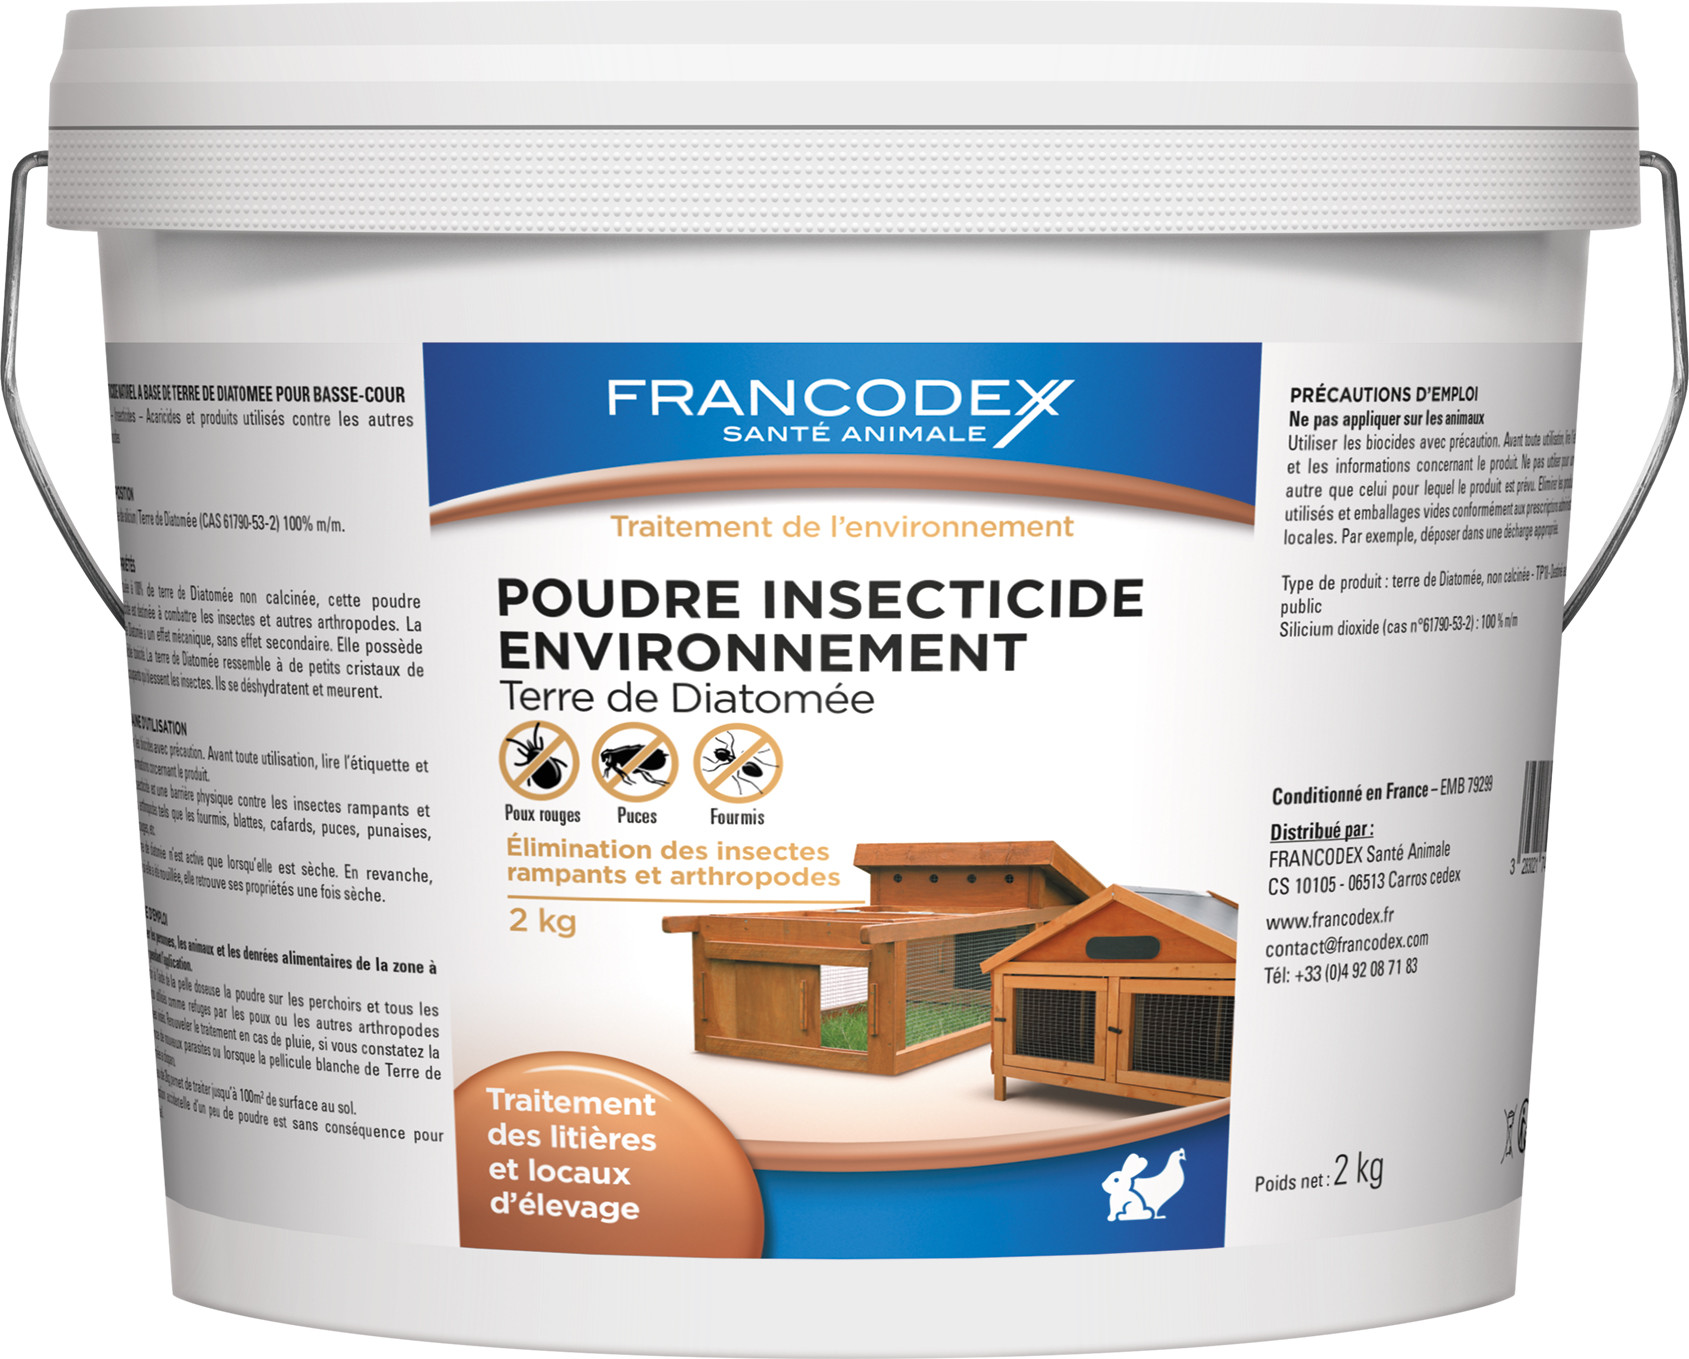 Poudre insecticide basse cour 2kg